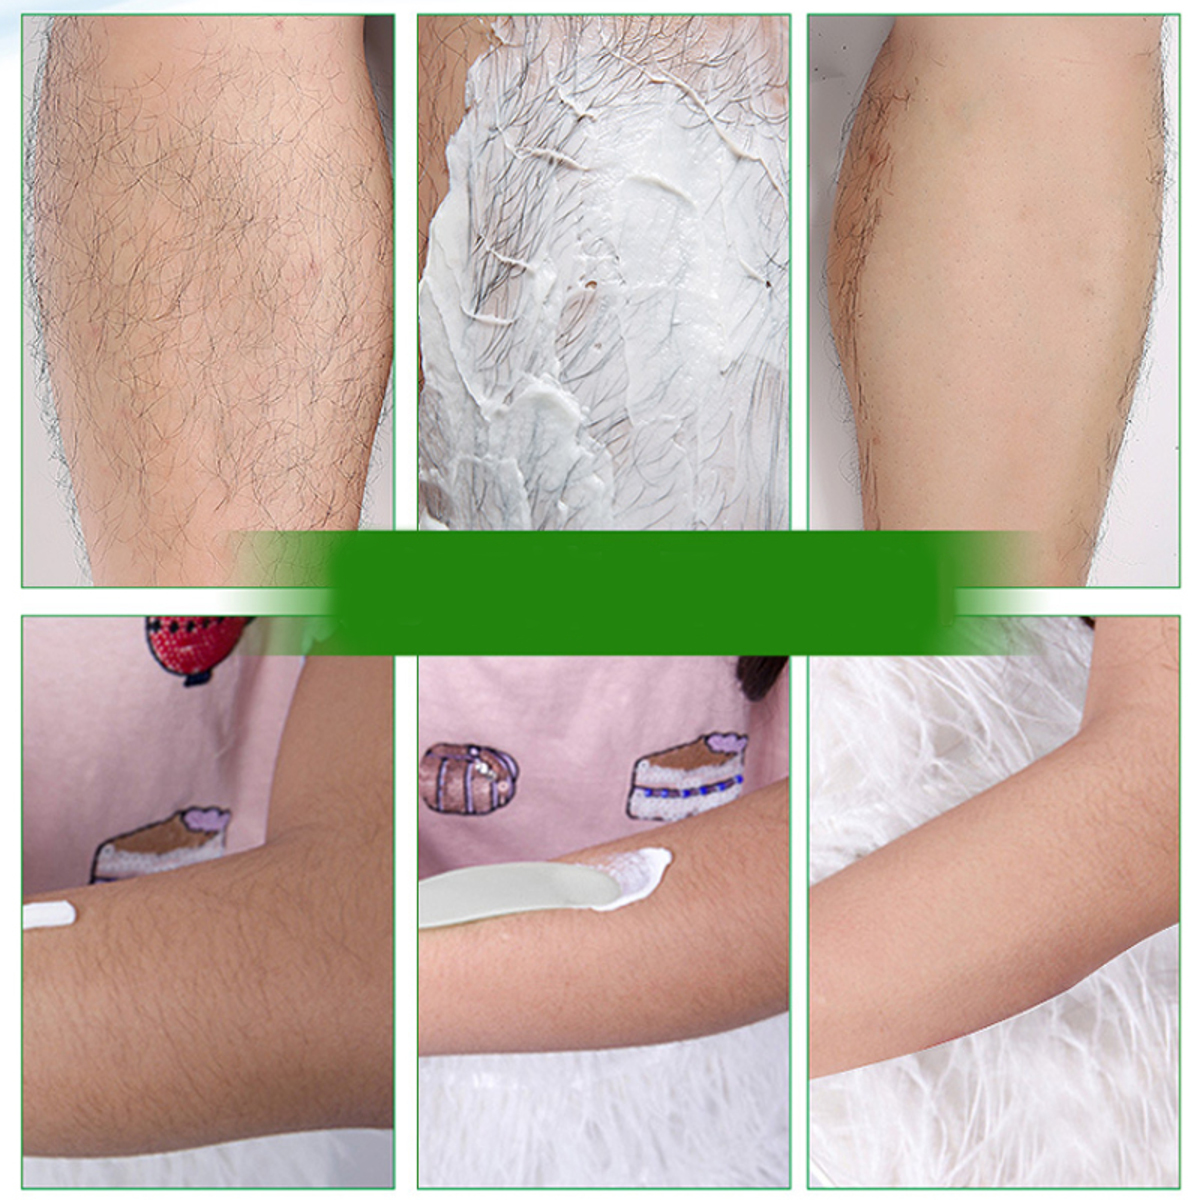 150g Unisex Depilatory Bubble Hair Removal Cream